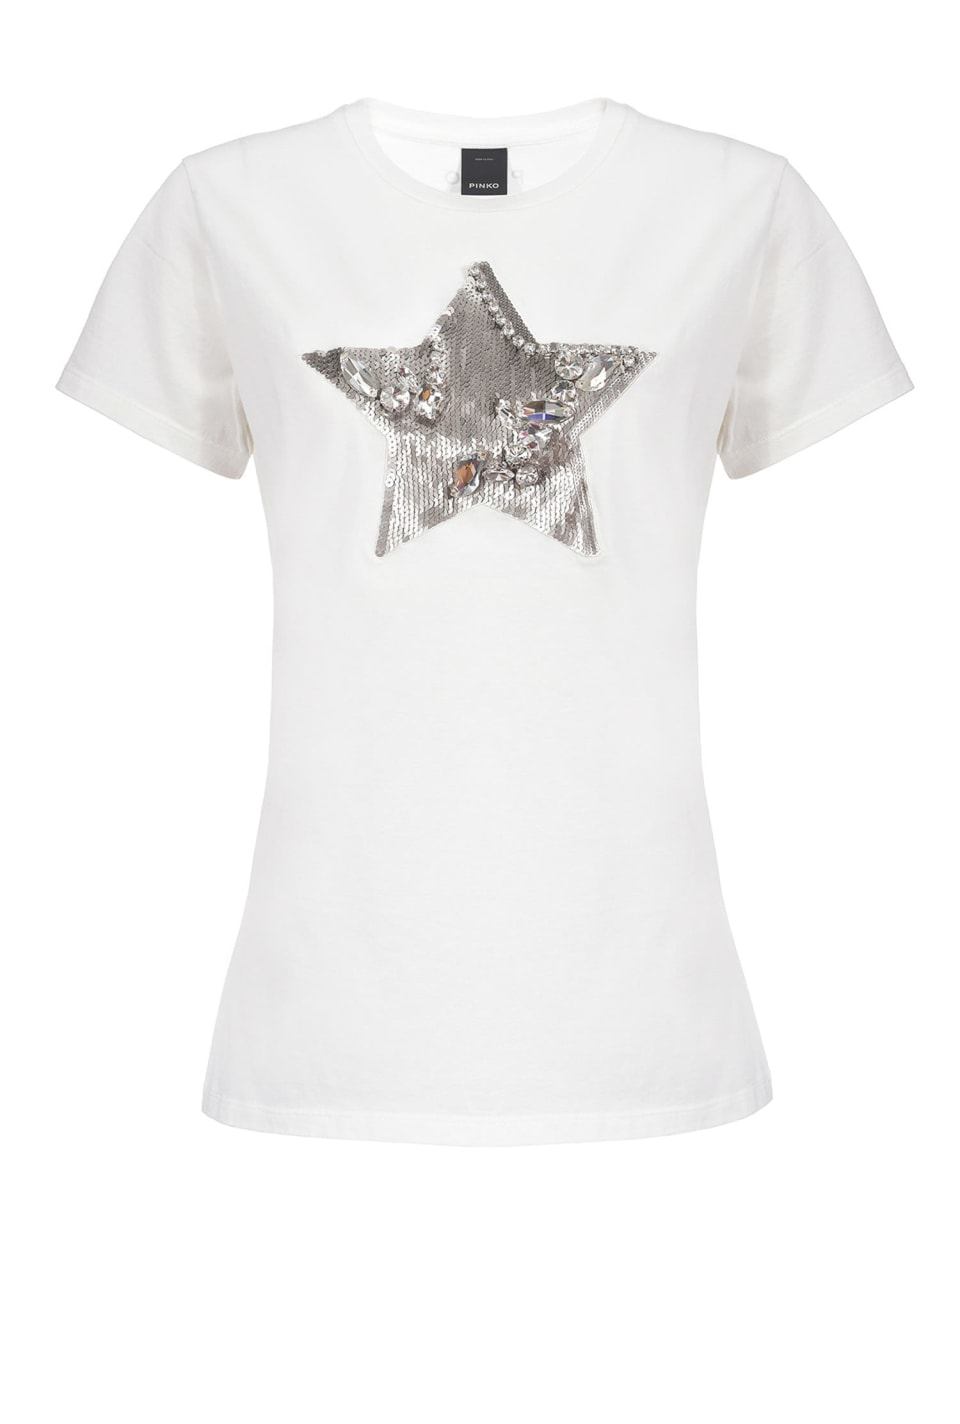 T-shirt with sequin and rhinestone star